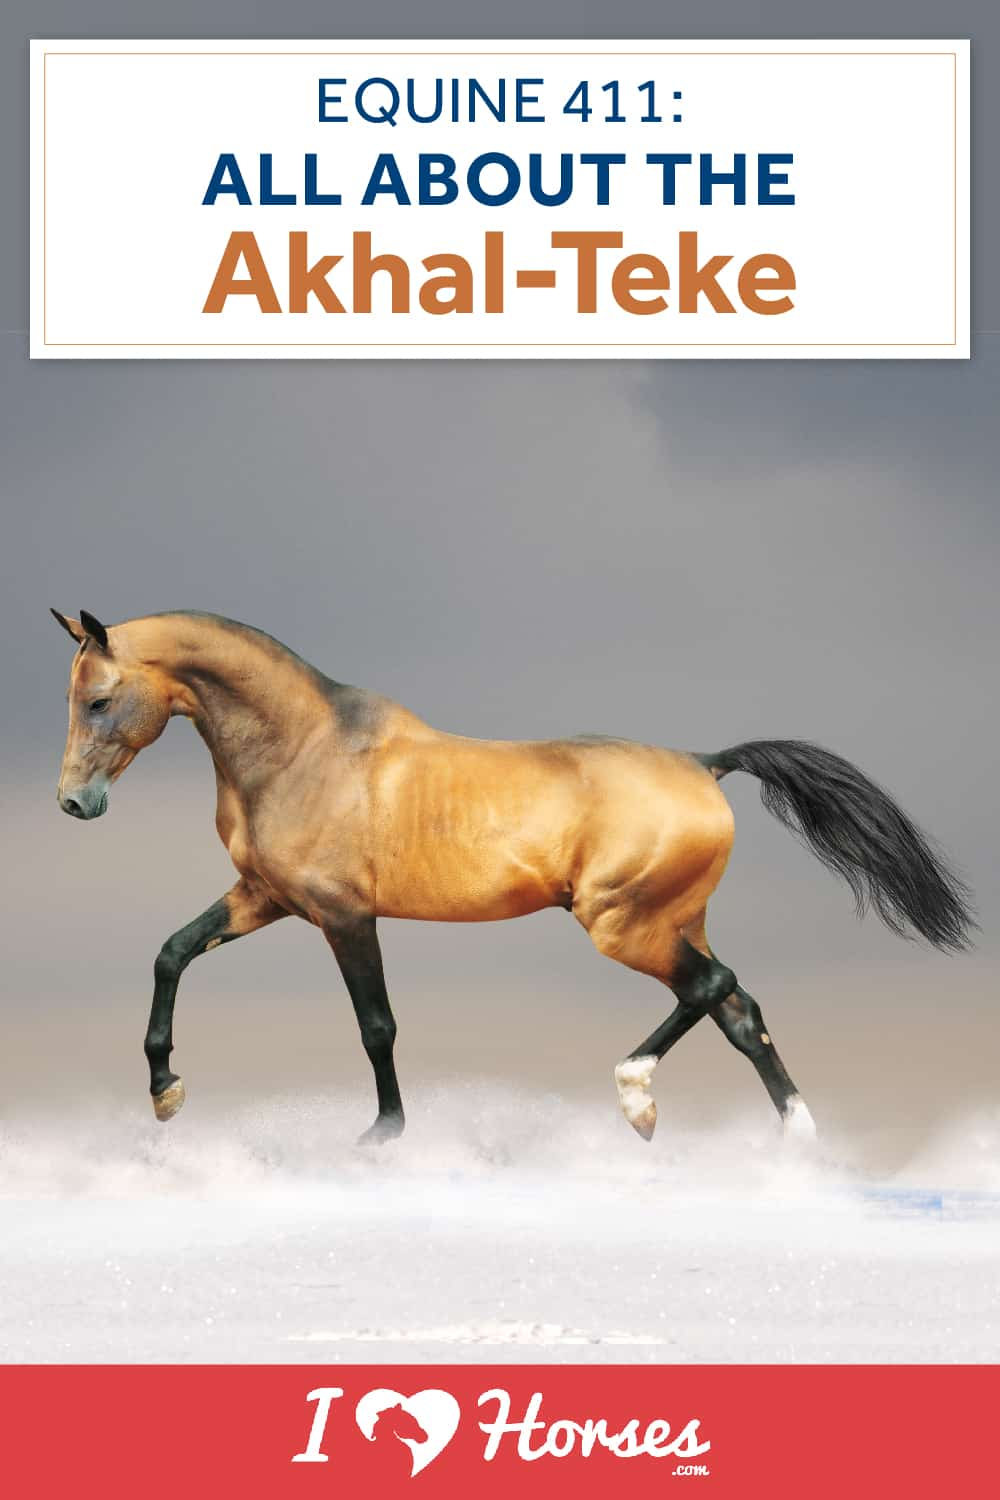 All About The Akhal-Teke